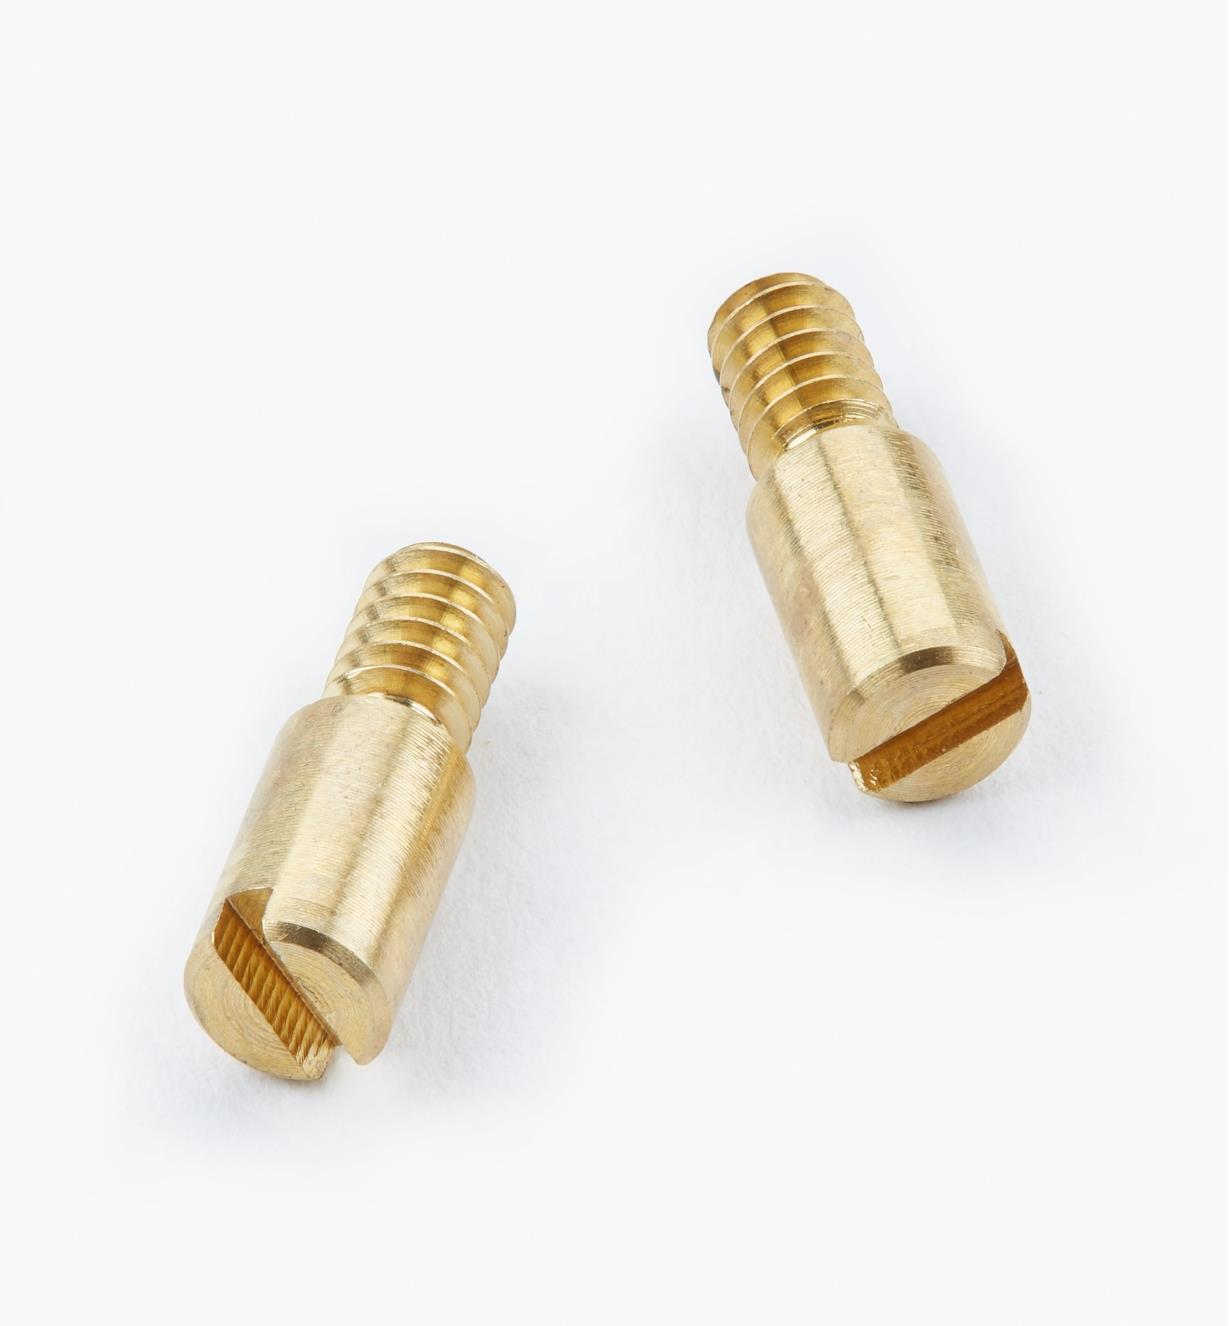 05N3102 - Brass Pins, pkg. of 2